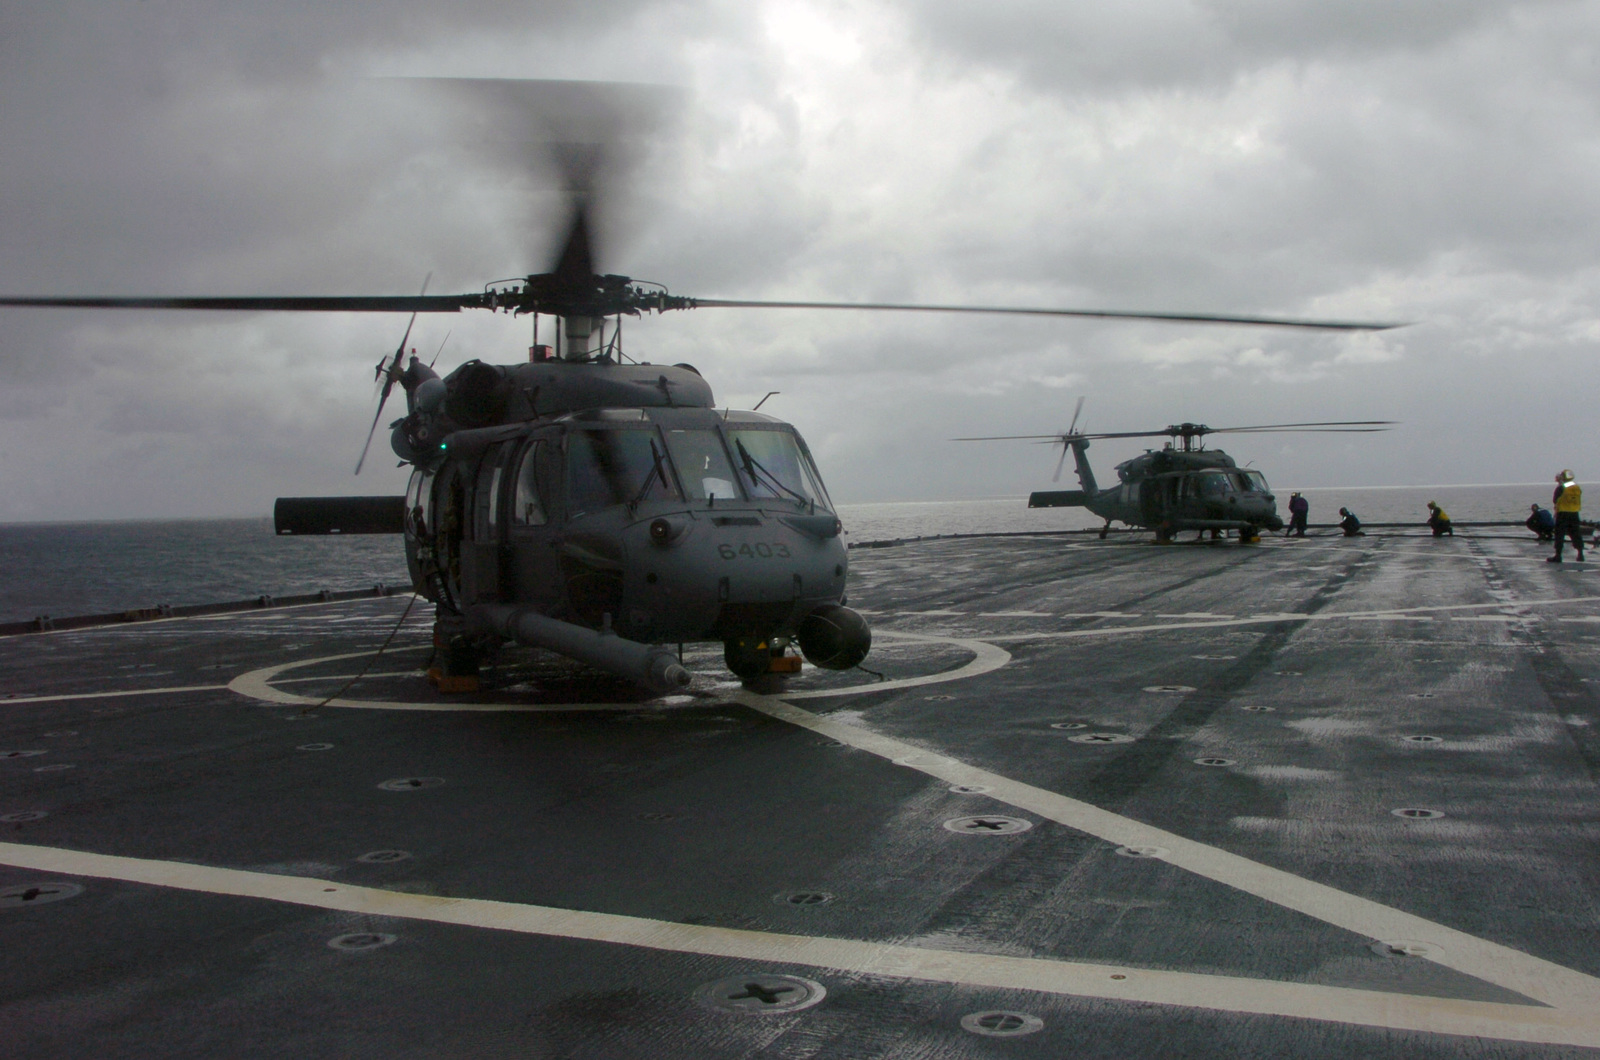 Two U.S. Air Force HH-60 Pavehawk helicopters from the 33rd Rescue Squadron, Kadena Air Base, Japan, land on the U.S. Navy Whidbey Island Class Dock Landing Ship USS FORT MCHENRY (LSD 43) during ship deck landing qualification training during typhoon relief operations in the Philippines on Dec. 17, 2004. The helicopters landed on the ship after their last relief supply run at Quezon Province, Philippines. (USAF PHOTO by MASTER SGT Val Gempis) (Released)